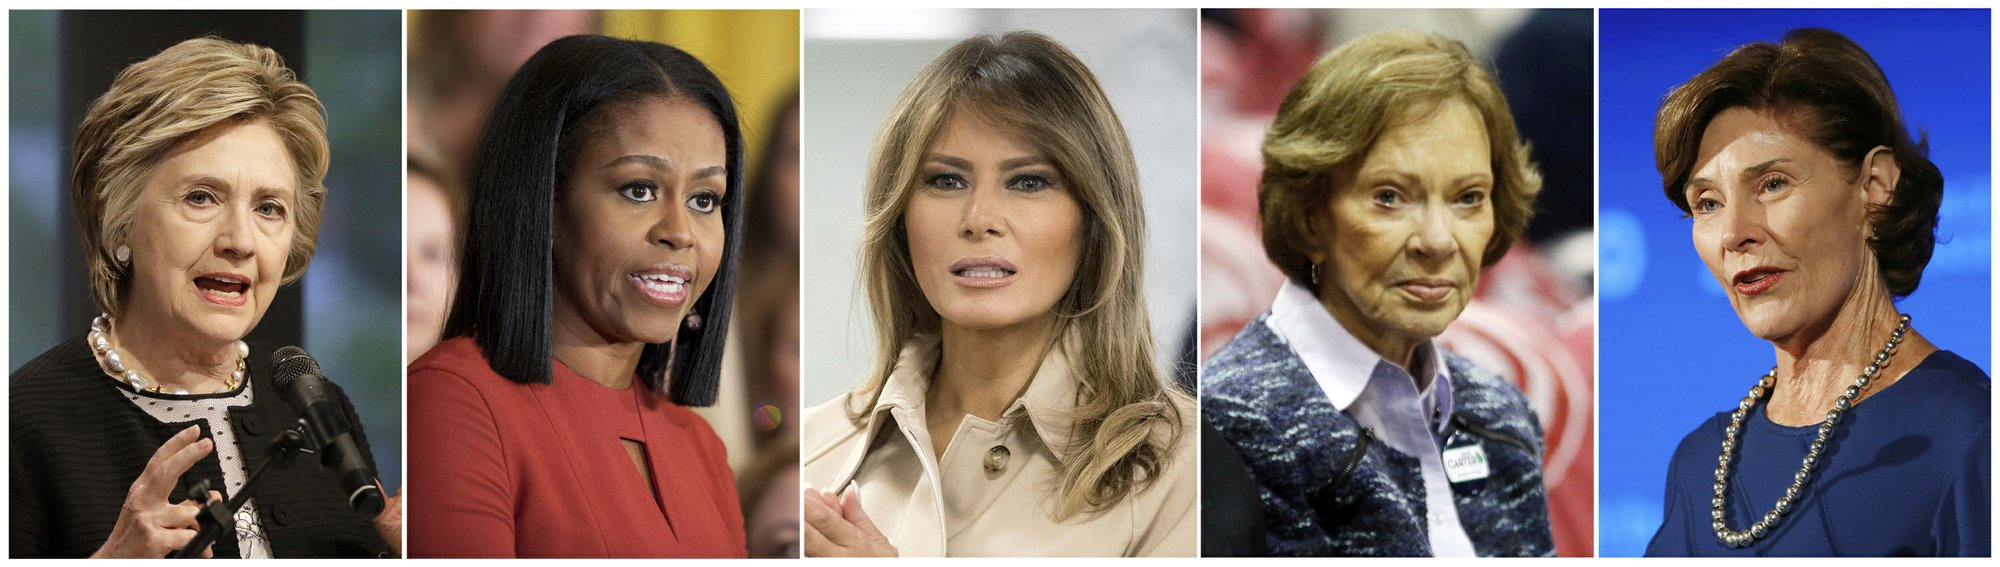 All 5 first ladies speak out on family separations at border